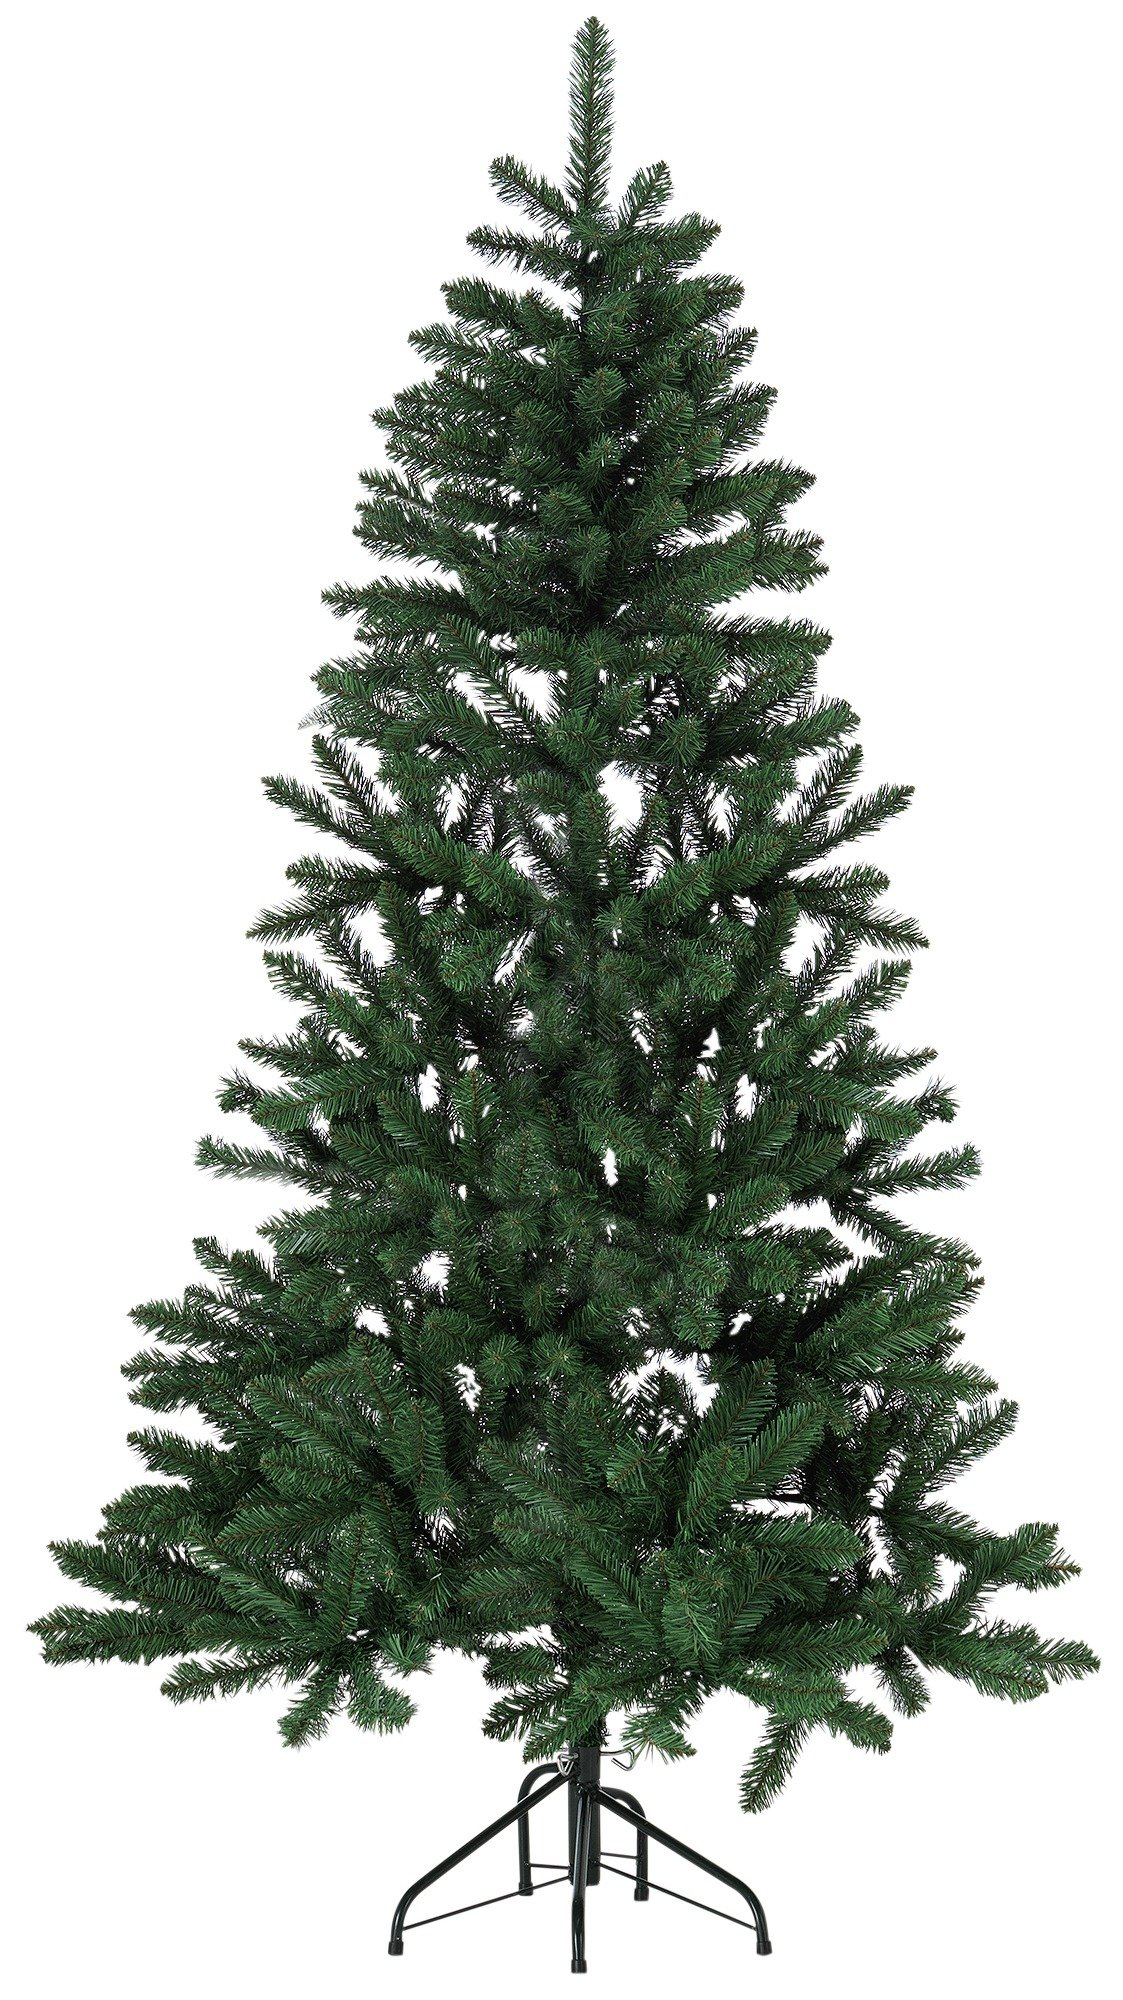 sale on 6ft flat backed christmas tree green argos. Black Bedroom Furniture Sets. Home Design Ideas